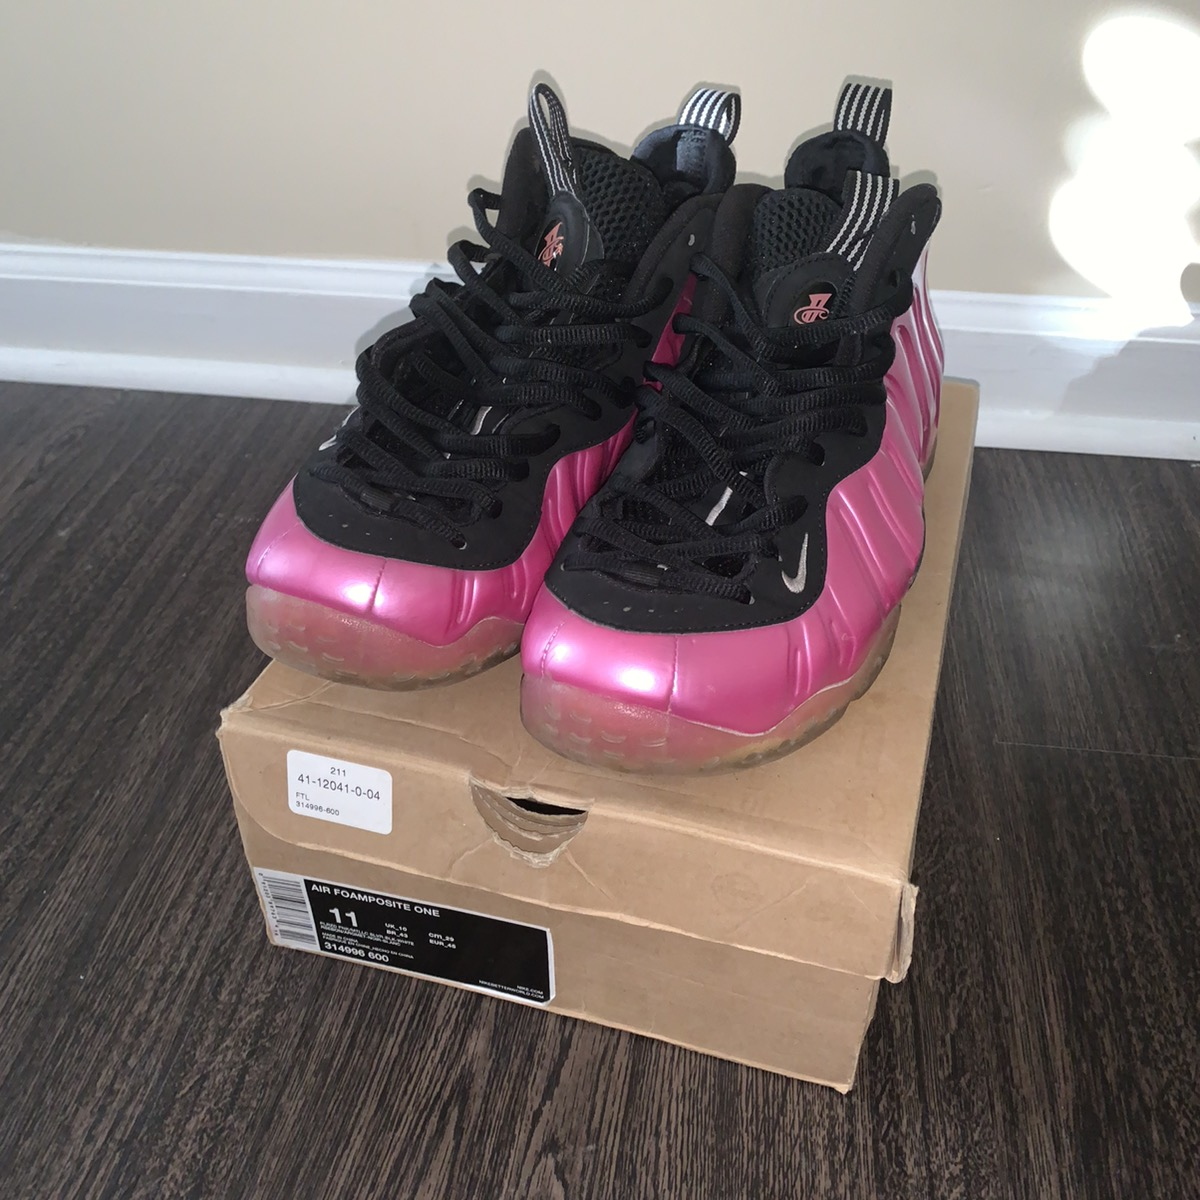 The women s Nike Air Foamposite One Shine Dark Stucco is ...